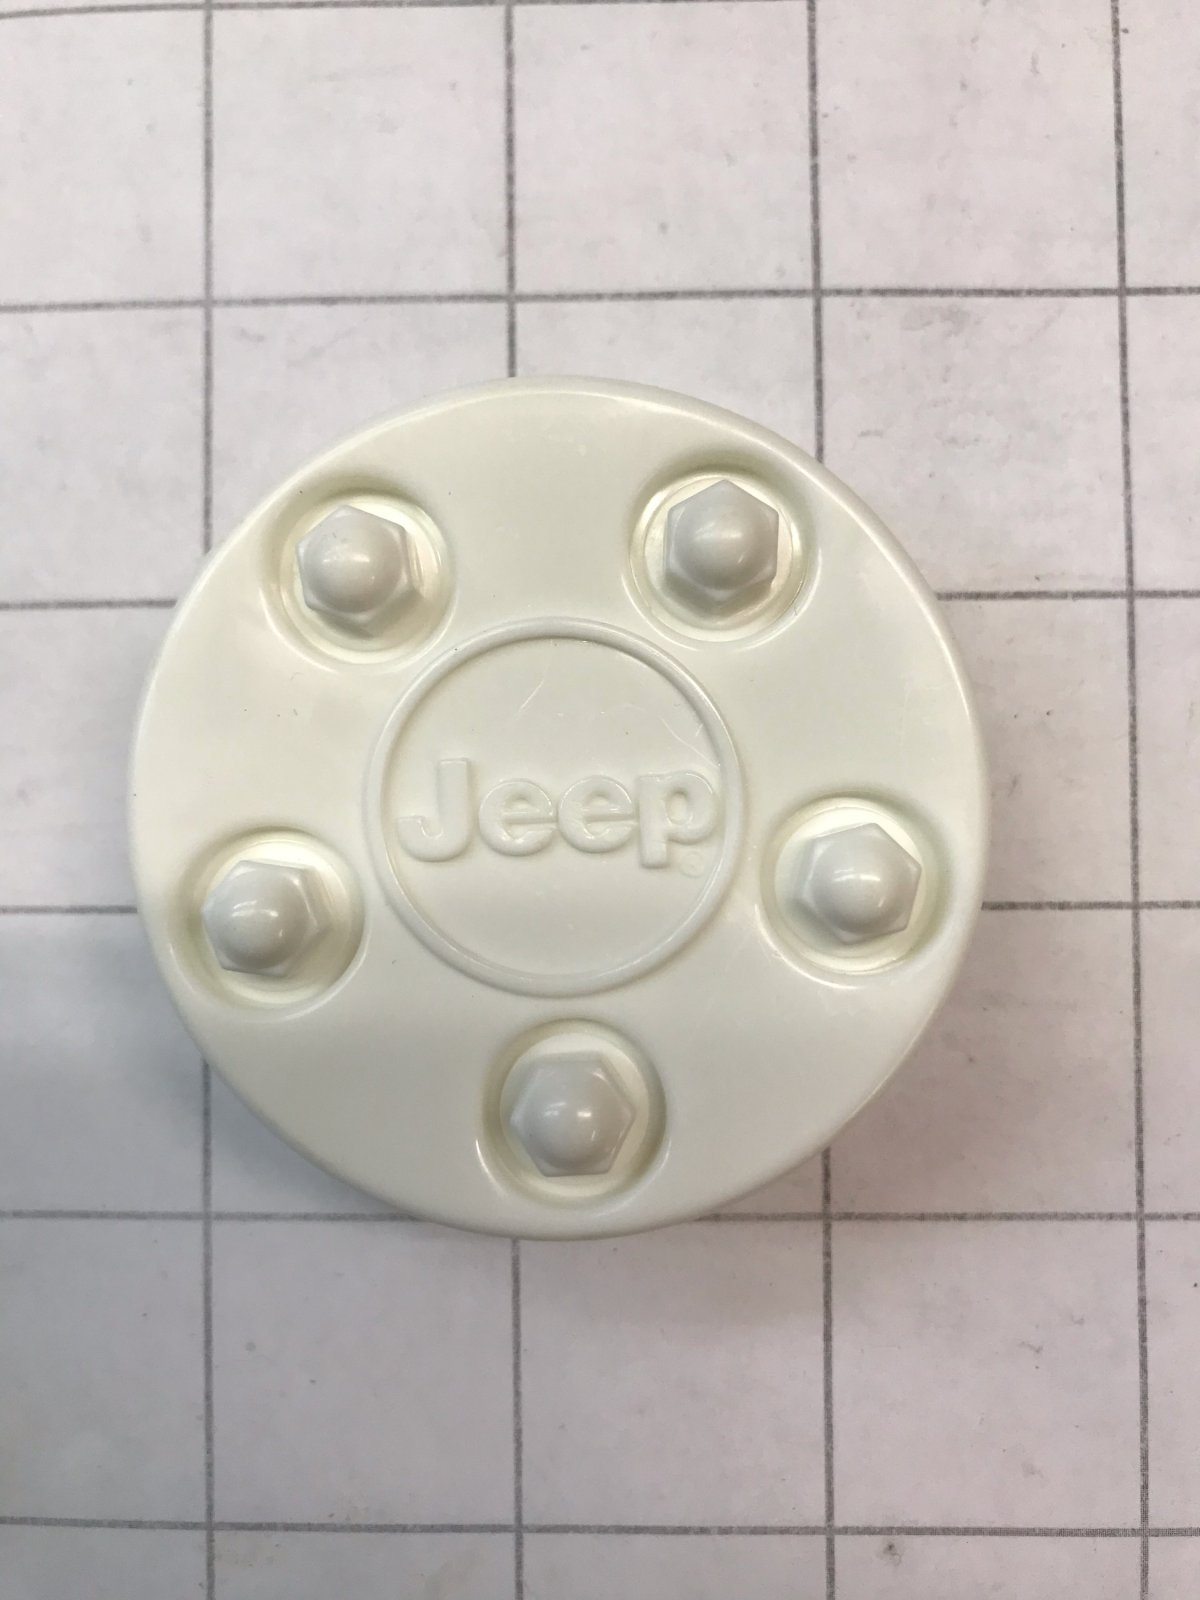 Jeep Hubcap Center - White